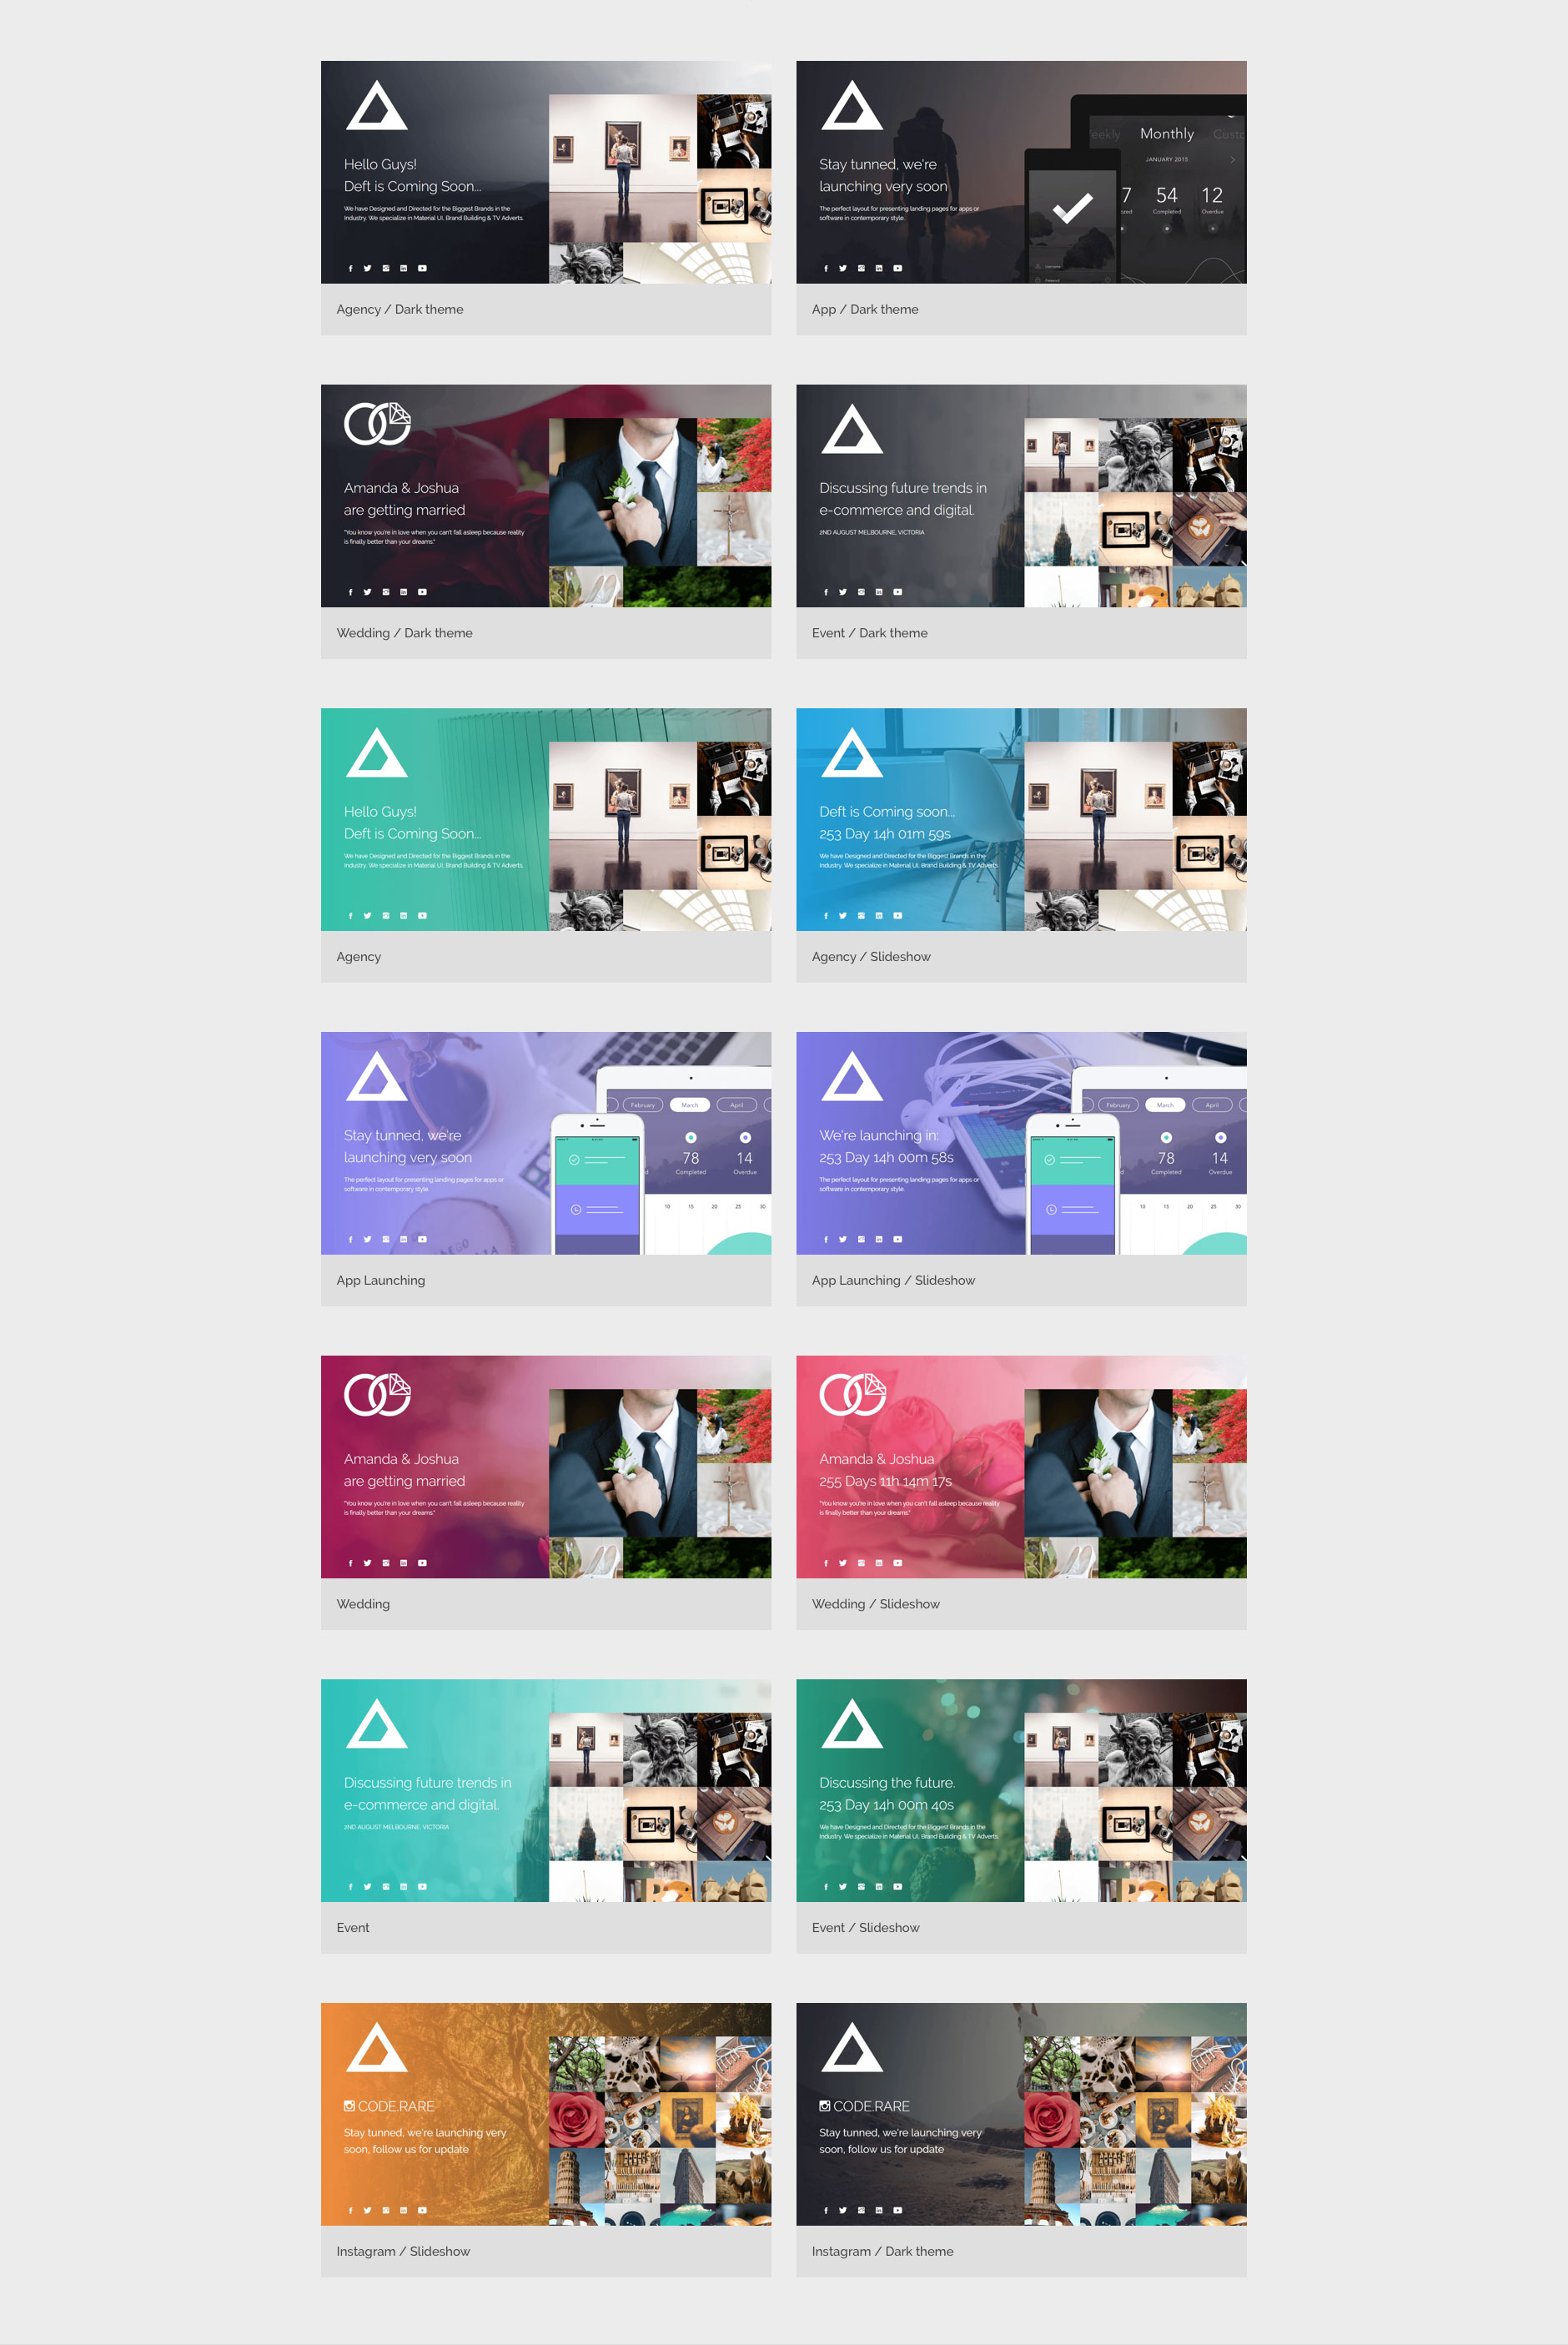 Deft is a Modern and colorful HTML5 Bootstrap multipurpose coming soon template. It offers multiple pre-designed pages for  agencies, general business, wedding, app launching, events etc. Deft built with fully responsive and retina ready elements and the latest HTML5 and CSS3.